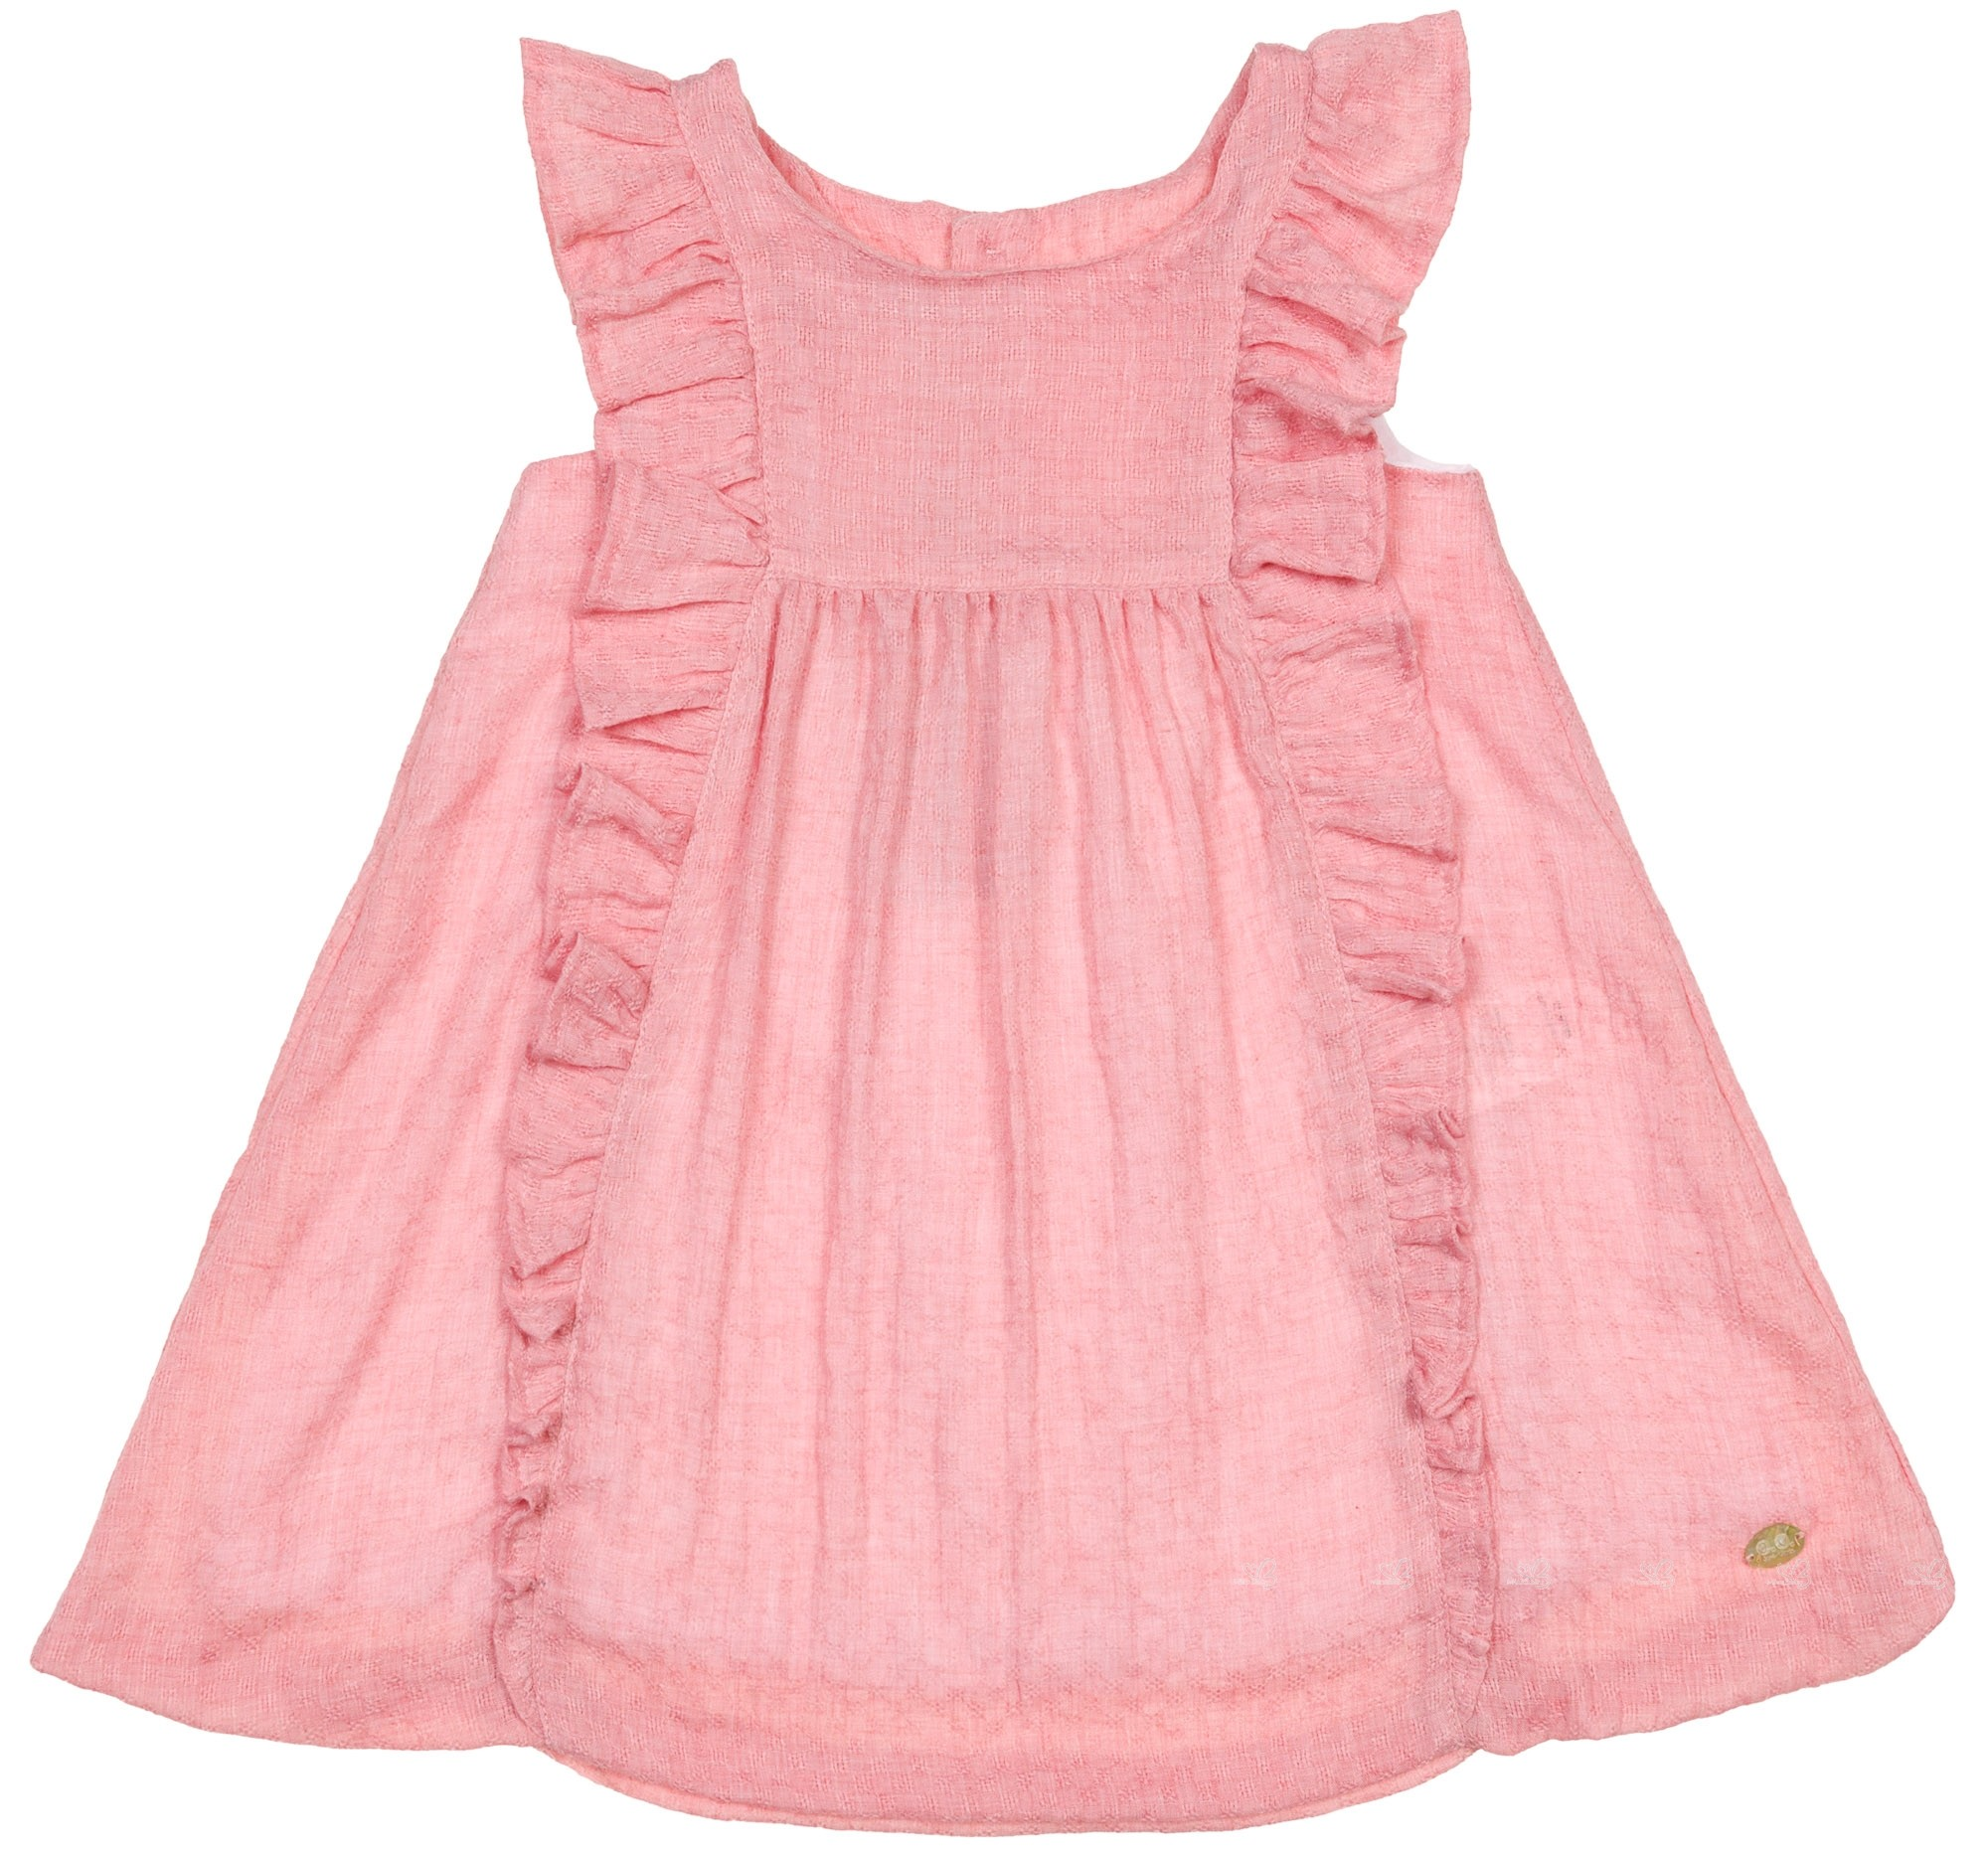 J V Baby Girls Pink Muslin Ruffle Dress